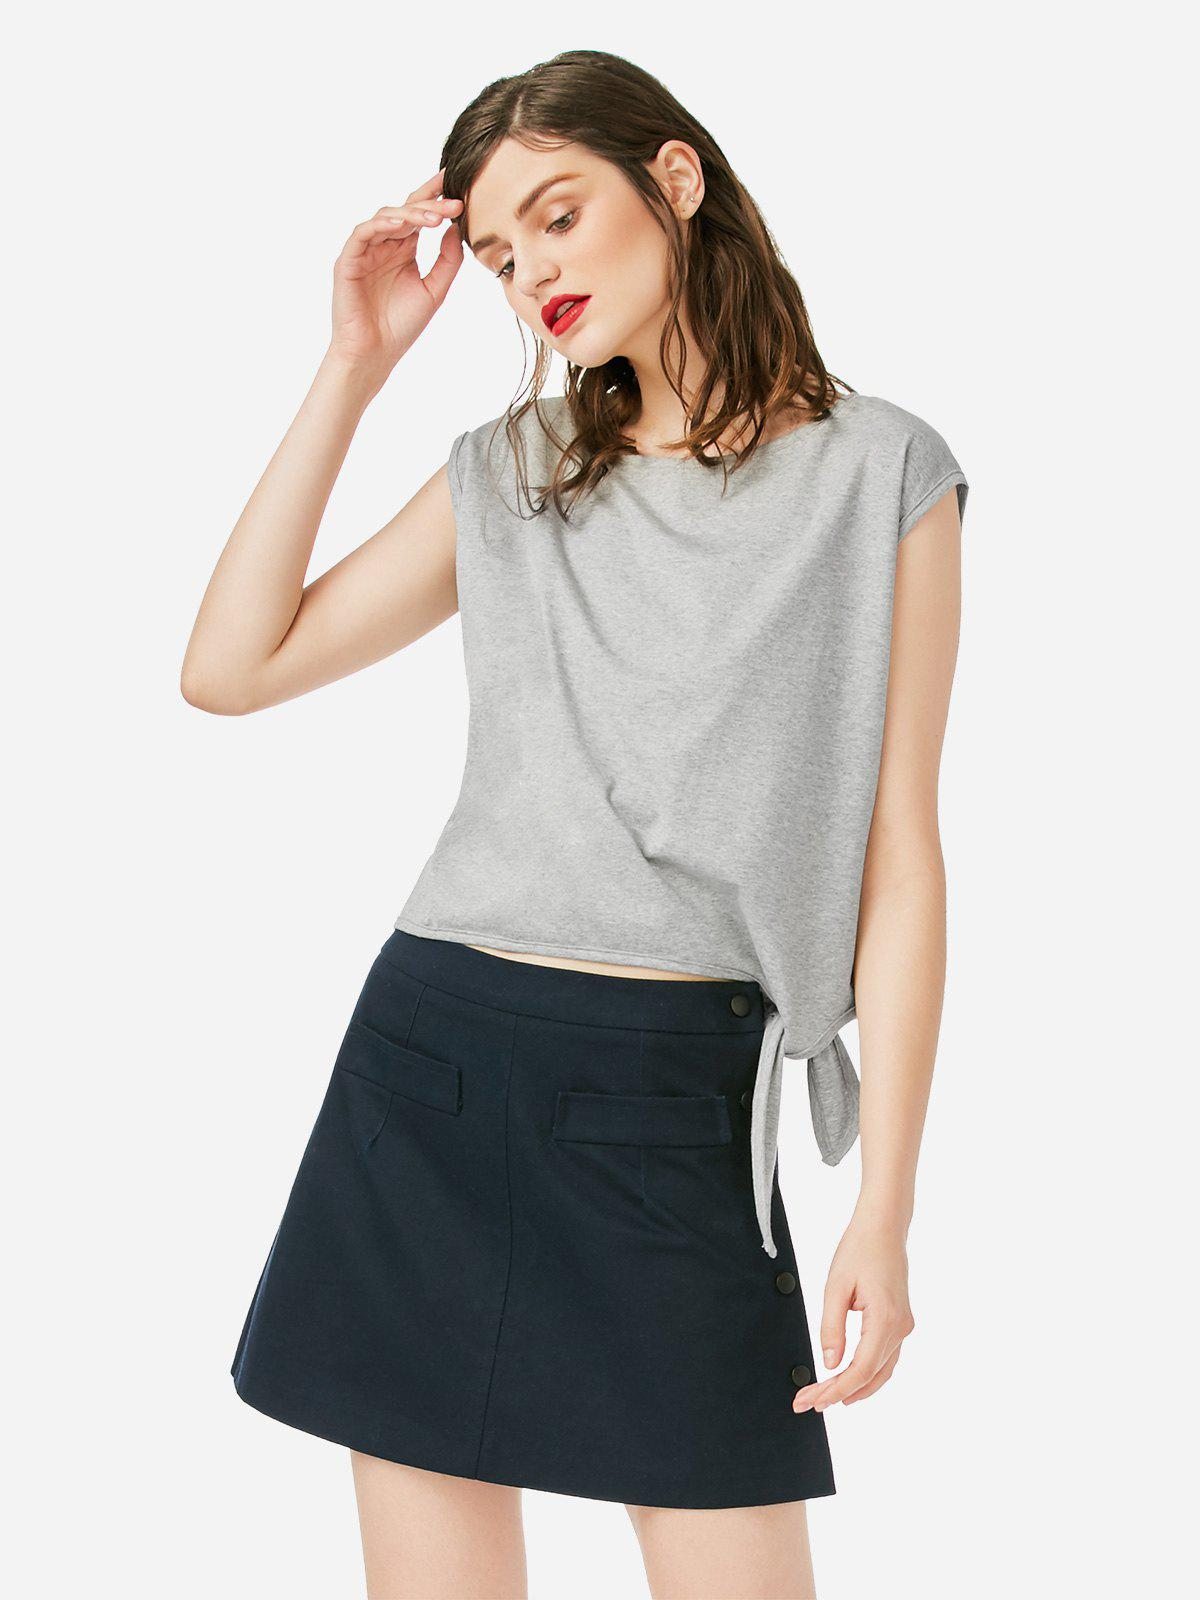 ZAN.STYLE Sleeveless Side Knotted Top - GRAY M